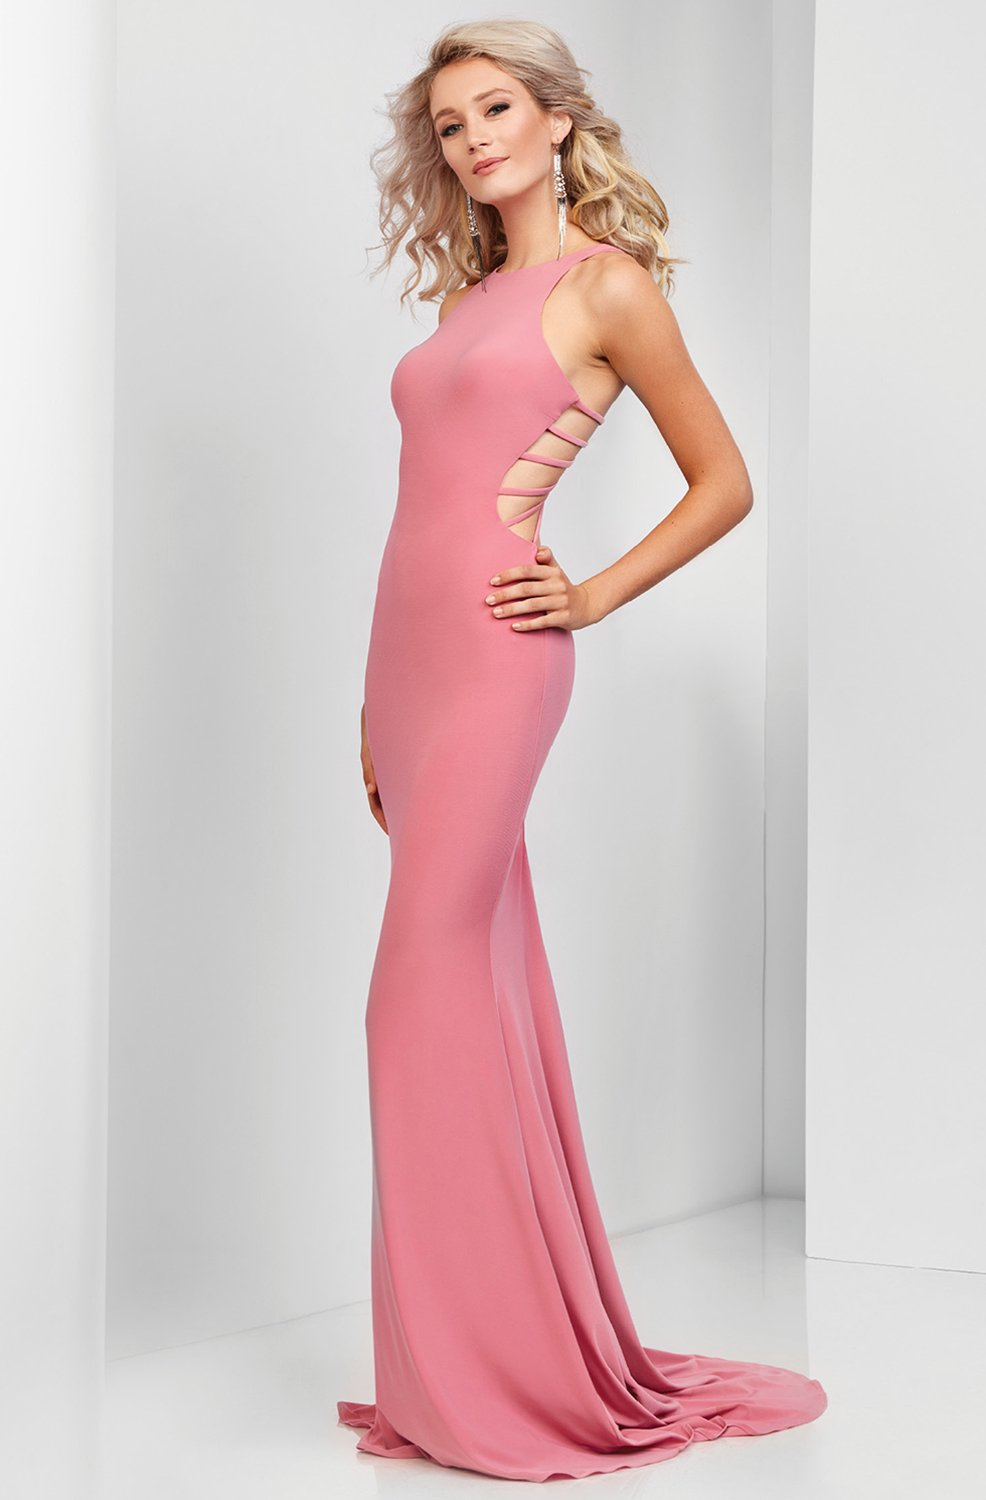 Clarisse - 3459 Strappy Jewel Sheath Dress in Pink